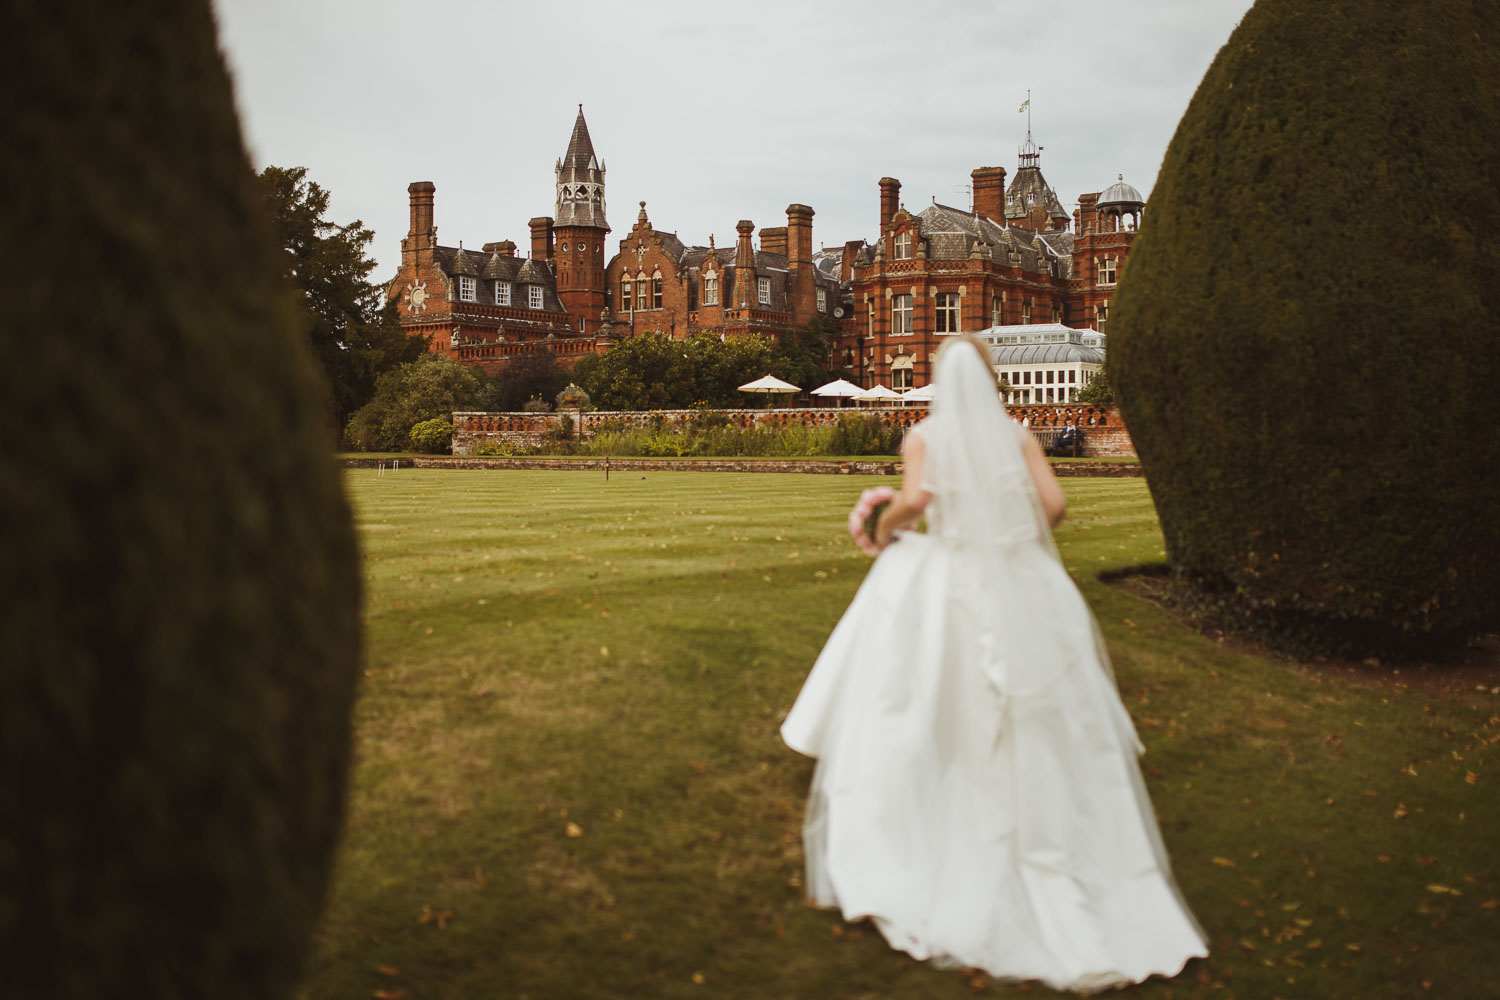 Elvetham hotel wedding photographer-10.jpg